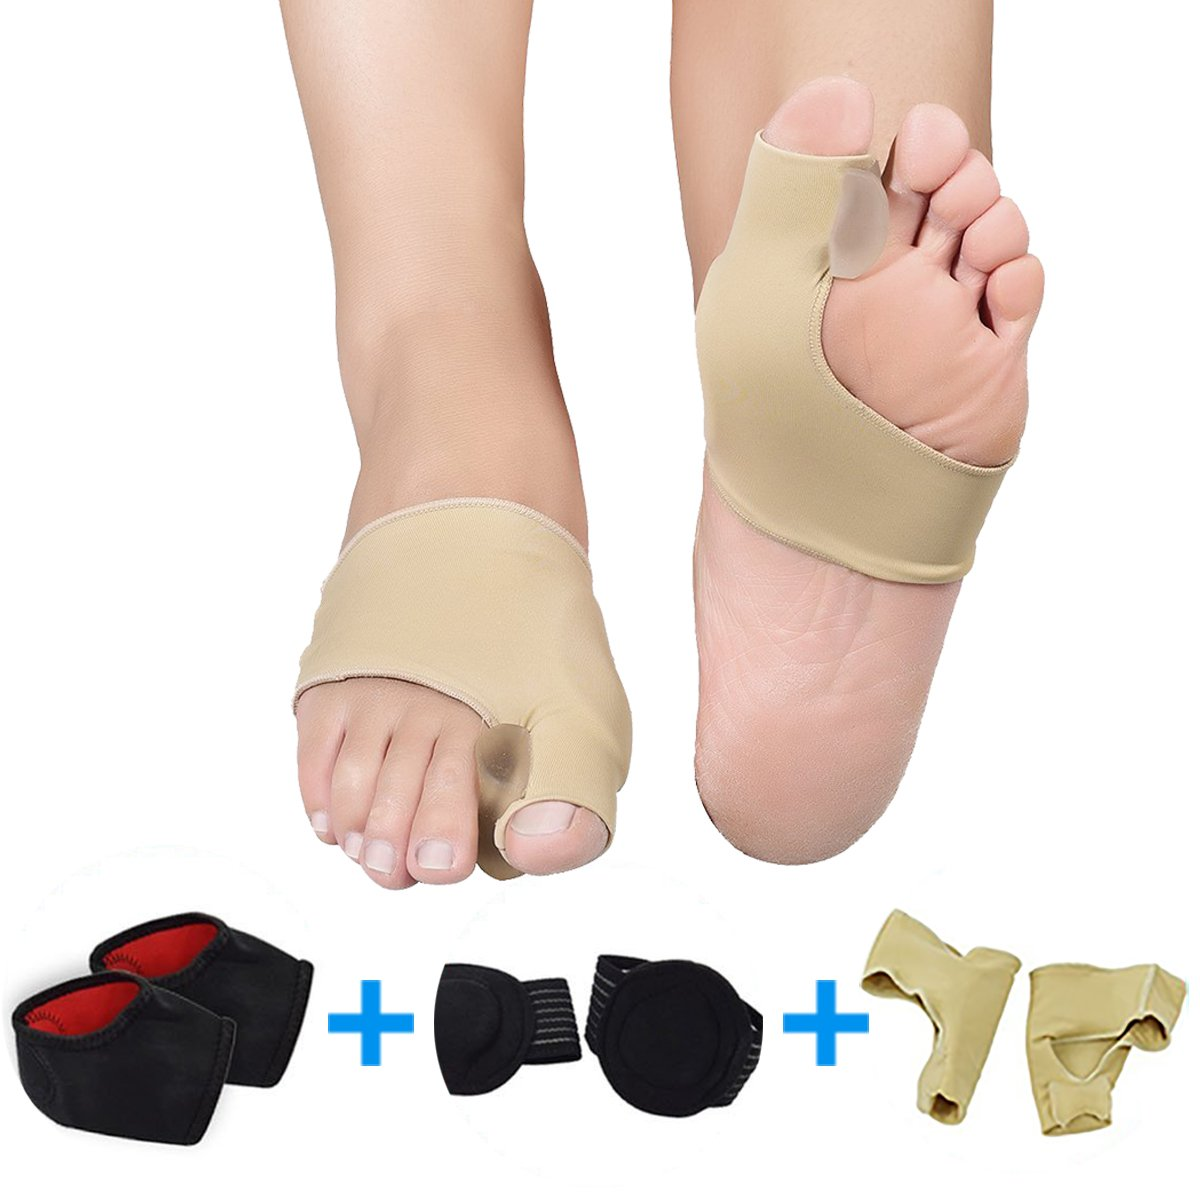 Bunion Splint Foot Care Protector, P-Jing Bunion Corrector Relief Protector Sleeves Kit & Arch Support & Foot Heel Protector for Heel Pain Treatment, Flat Foot Plantar Fasciitis Pain etc